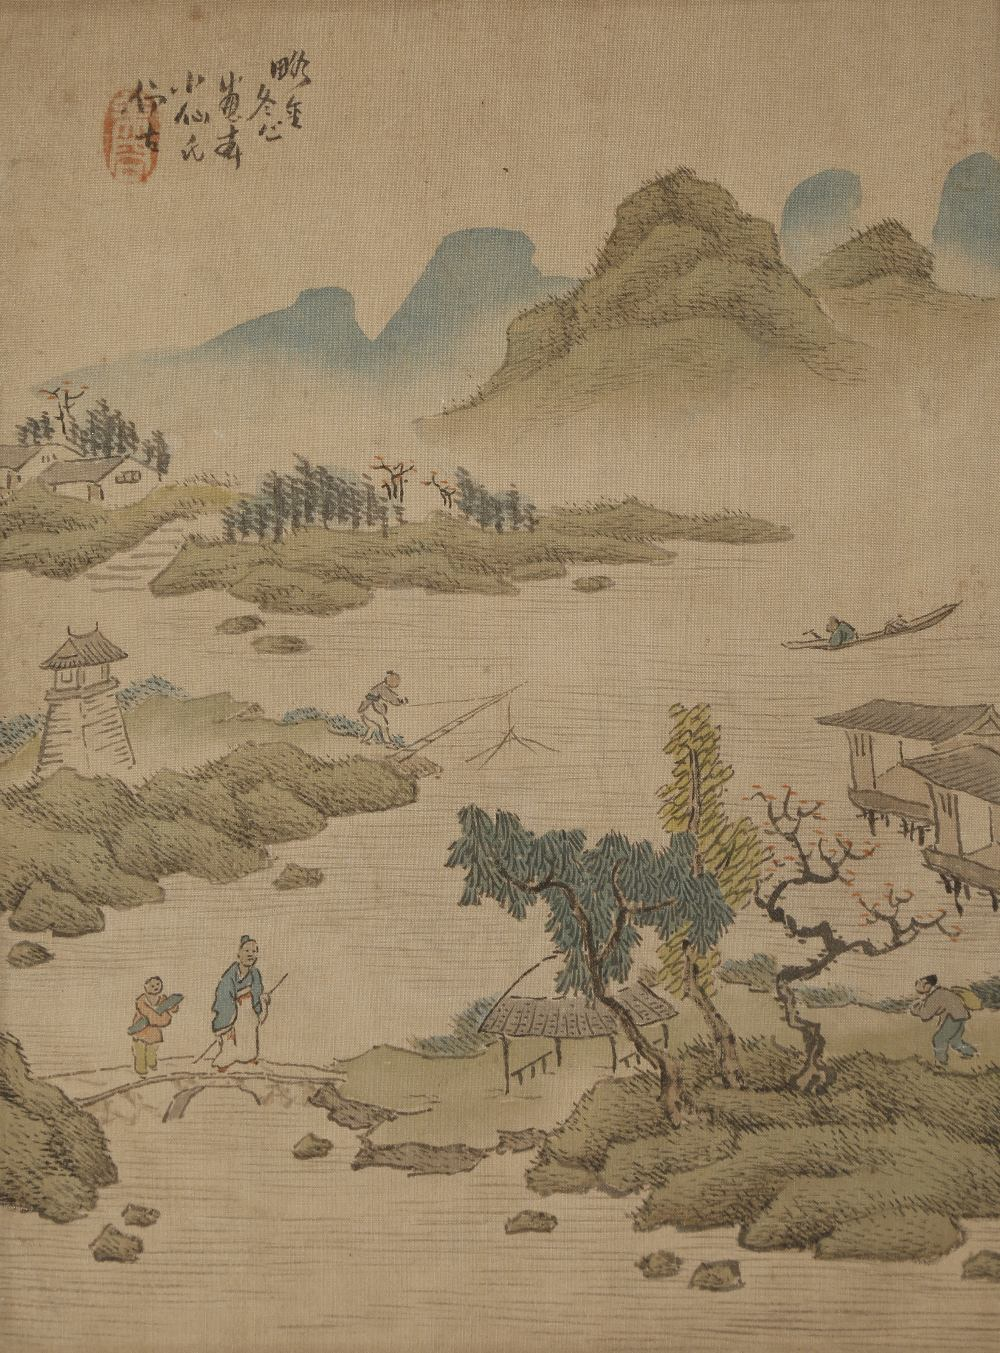 FEI CHENGWU (20TH CENTURY) SPARROW A Chinese painting, ink and colour on paper, signed Chengwu, with - Image 7 of 10